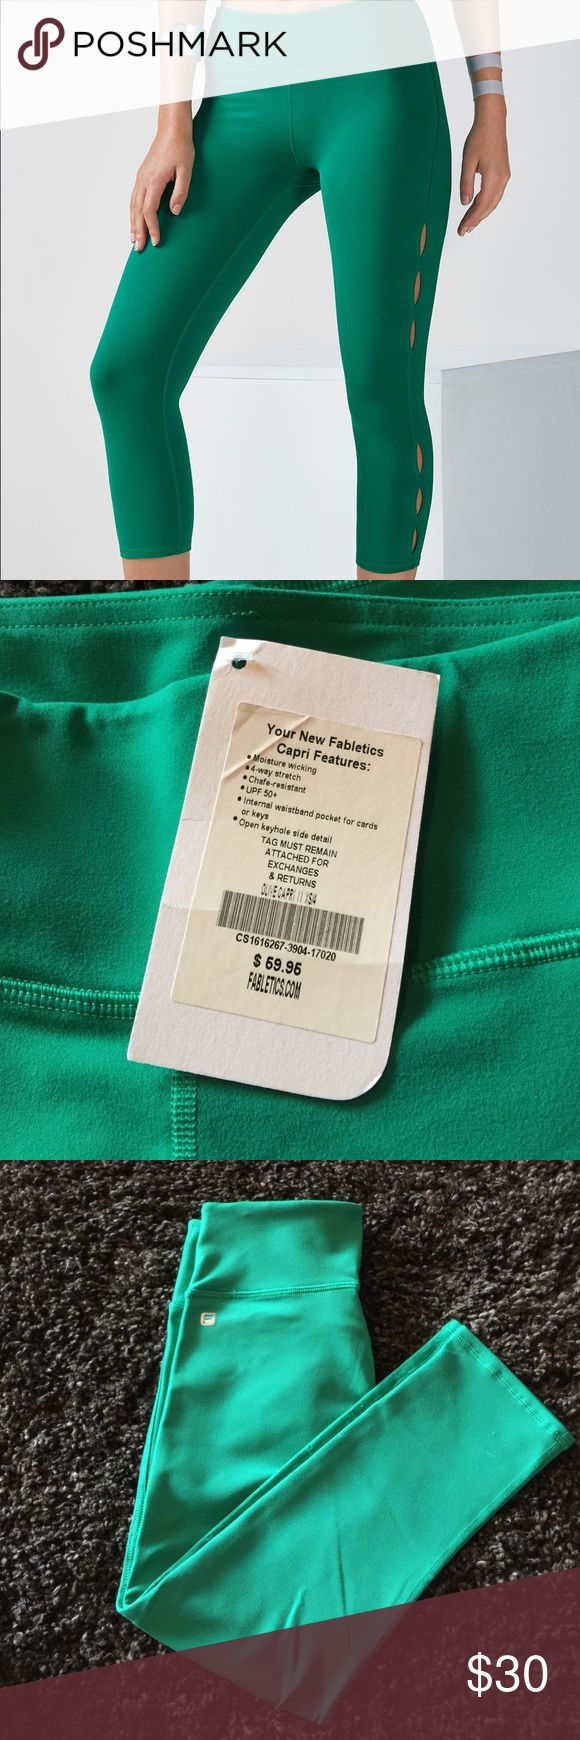 BNWT! Fabletics Capri Leggings! BNWT! Size XS! Accepting all reasonable offers! Fabletics Other